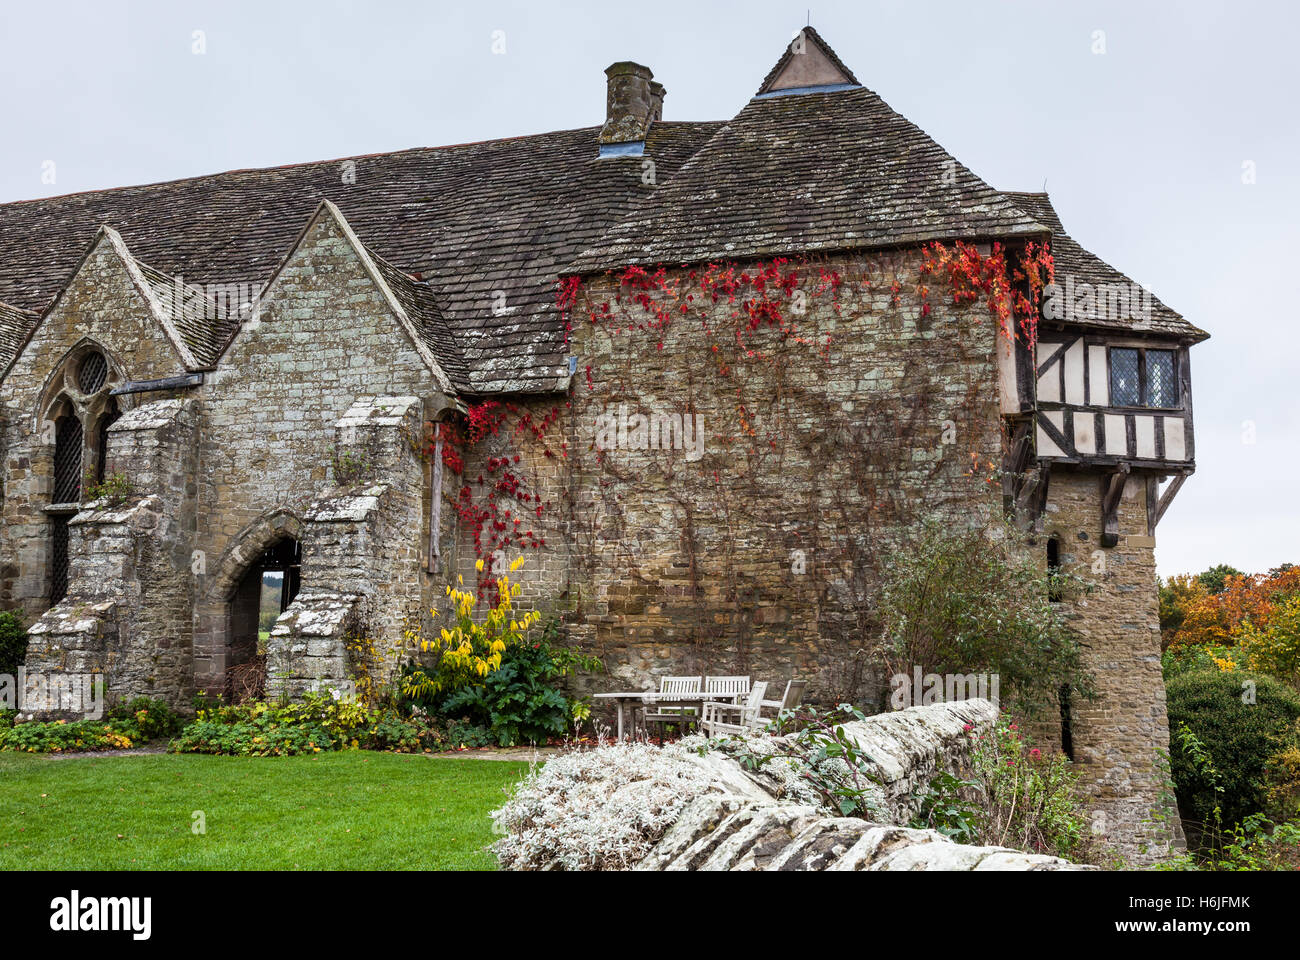 The fortified manor house of Stokesay castle, near Craven Arms, Shropshire, England, UK - Stock Image